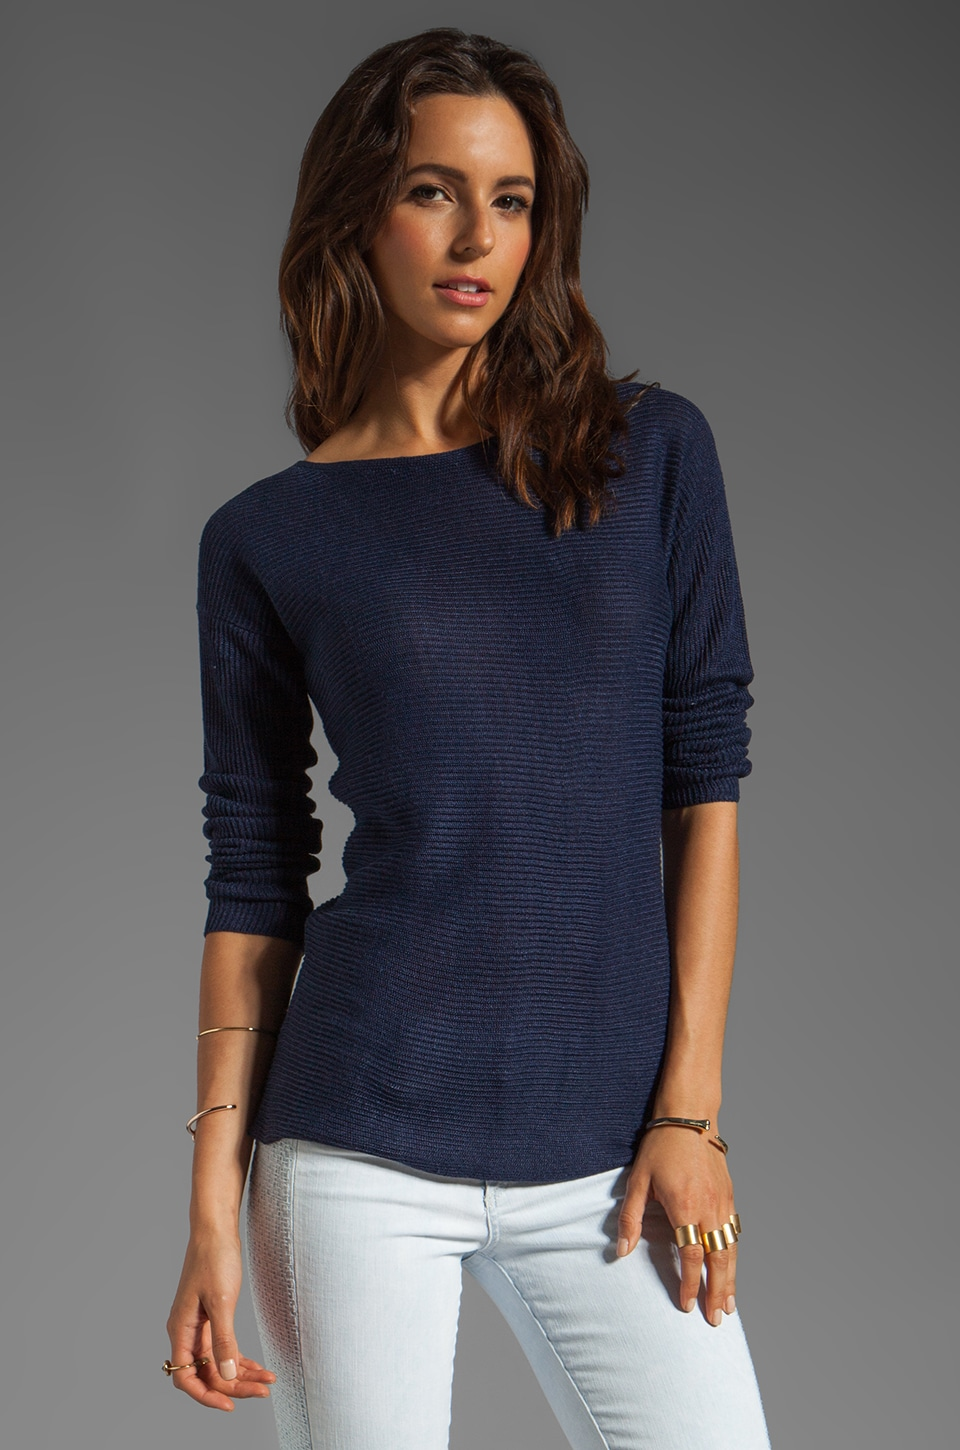 Theory Sag Harbor Lorinna Pullover in True Navy